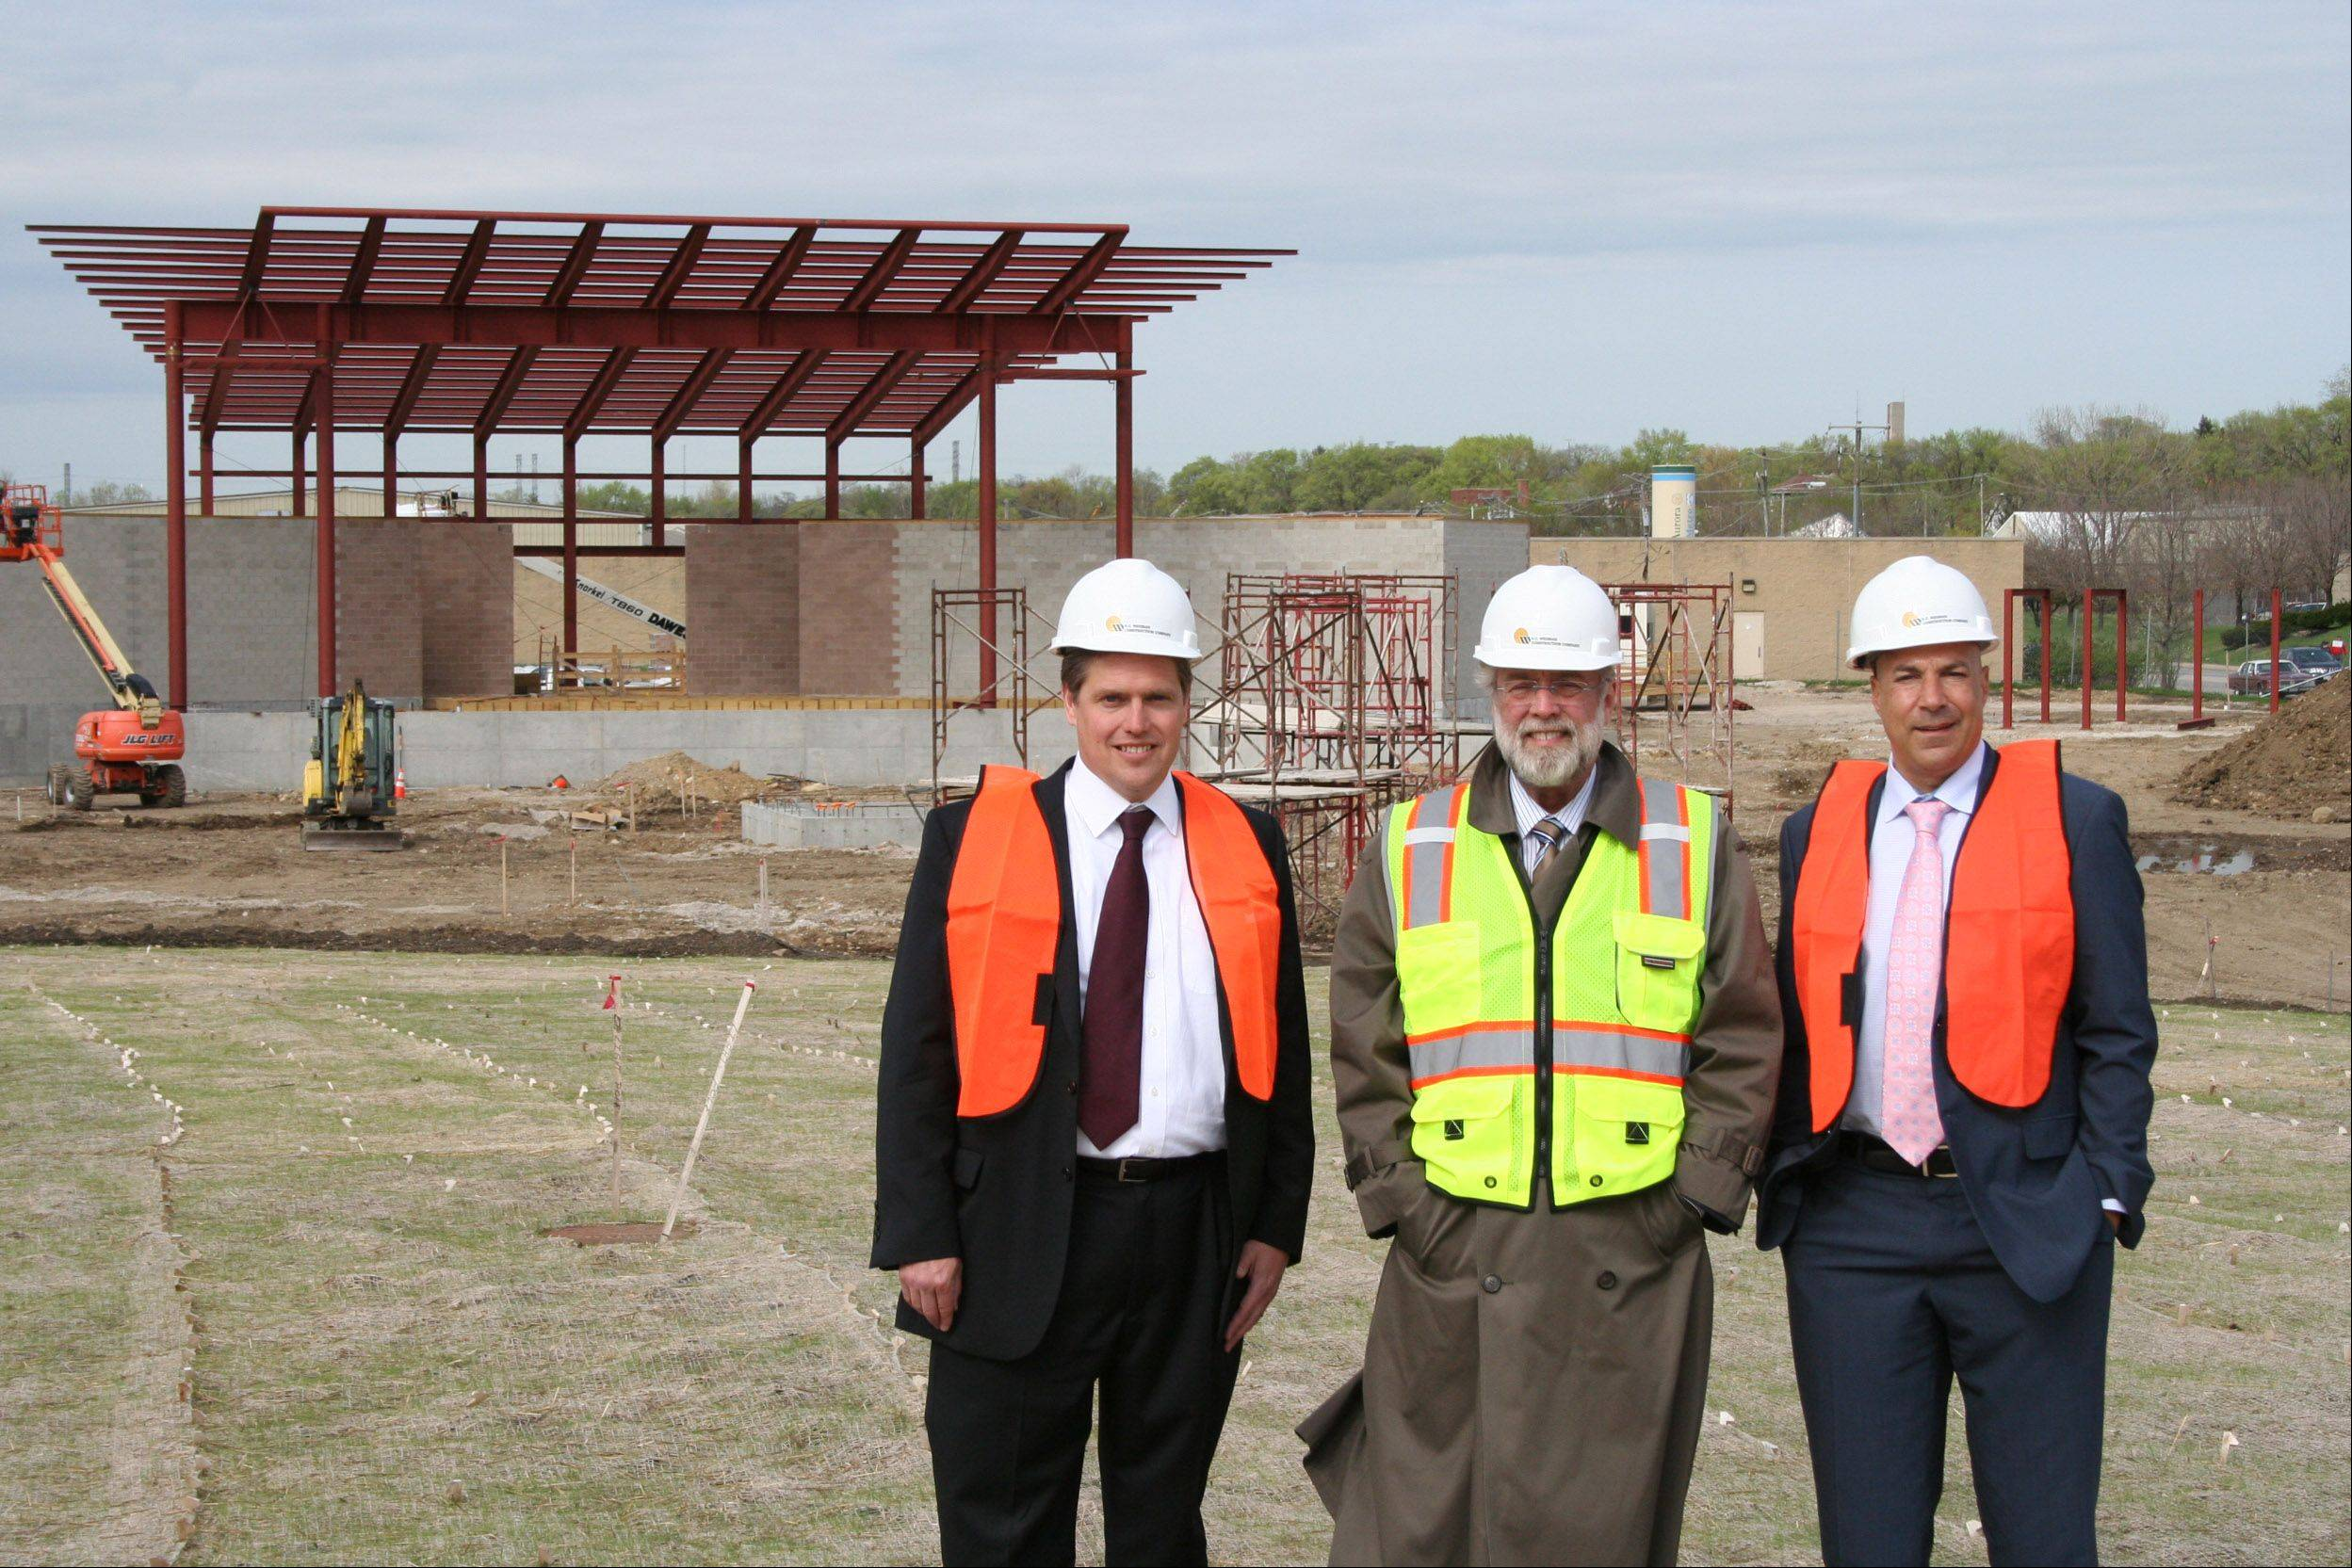 The city of Aurora still has $854,057 left to spend on RiverEdge Park, where Aurora Mayor Tom Weisner stands with Dunham Fund board Chairman Stewart Beach, left, and Dunham Fund board member Michael Morcos, right. Grants totaling $13 million are supporting the park's construction, which is budgeted to cost $13.2 million.